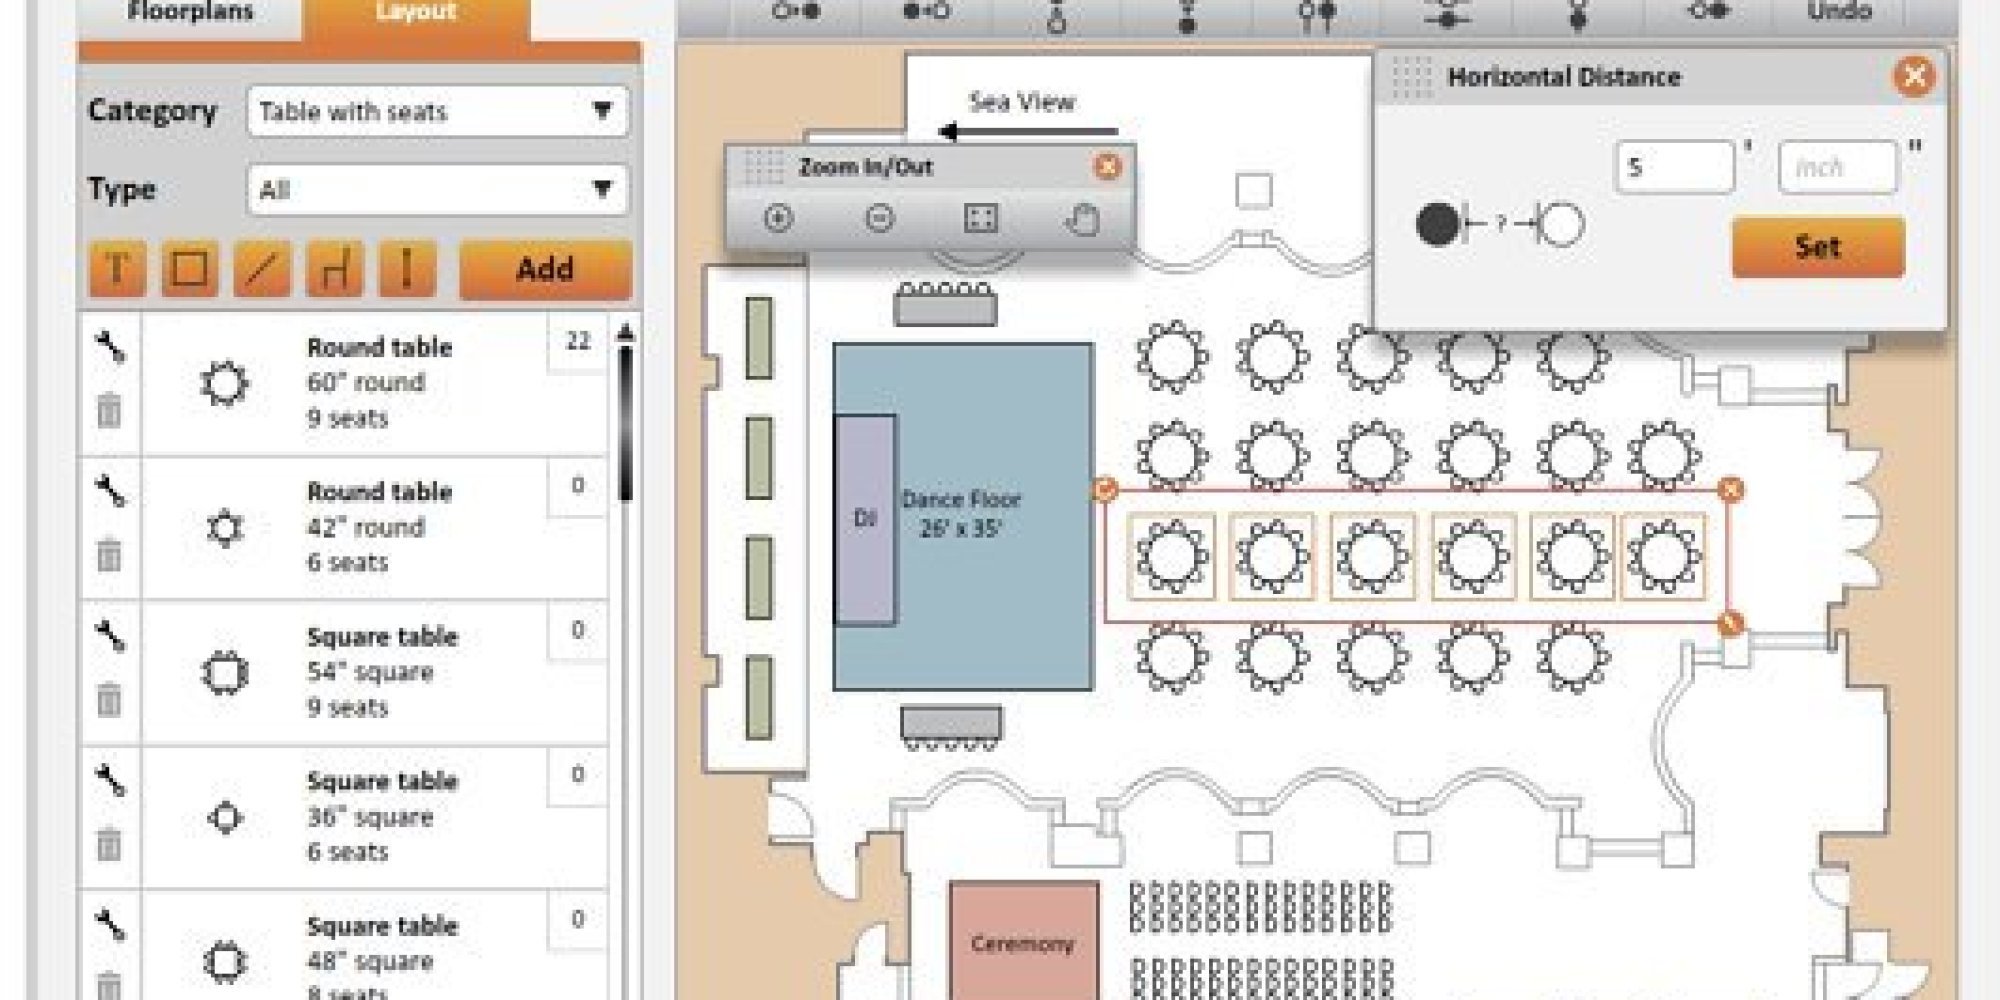 hight resolution of seating chart application stark houseofstrauss corestaurant seating diagram wiring diagram